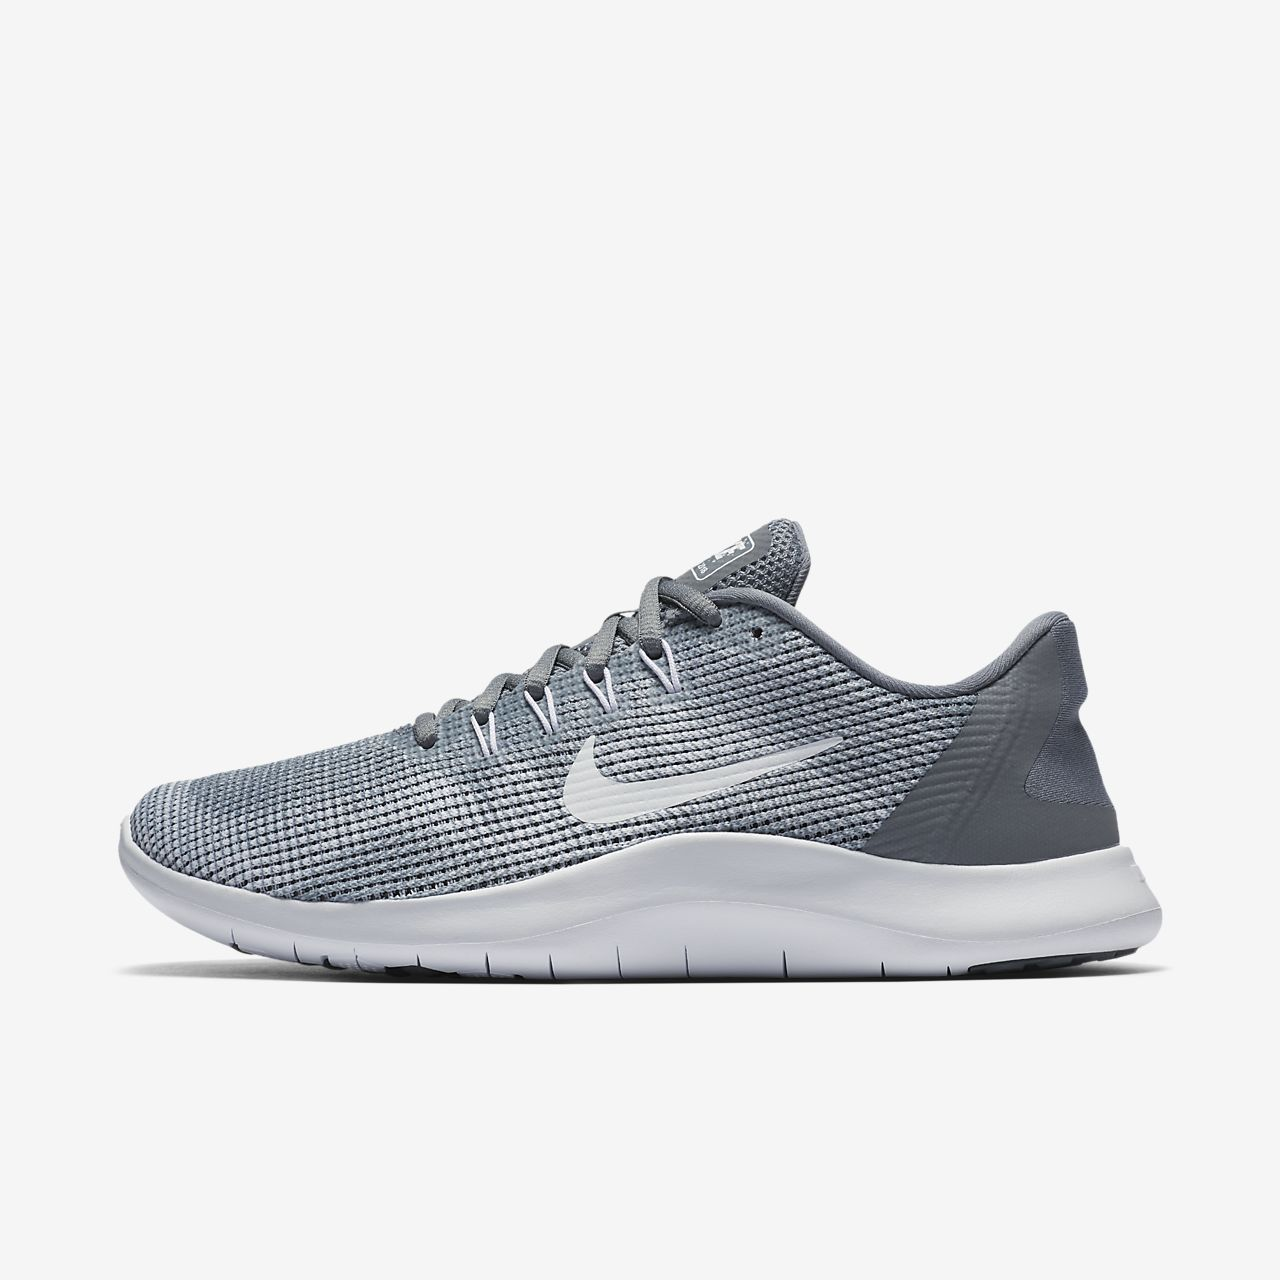 b39bb2539 Nike Flex RN 2018 Women s Running Shoe. Nike.com